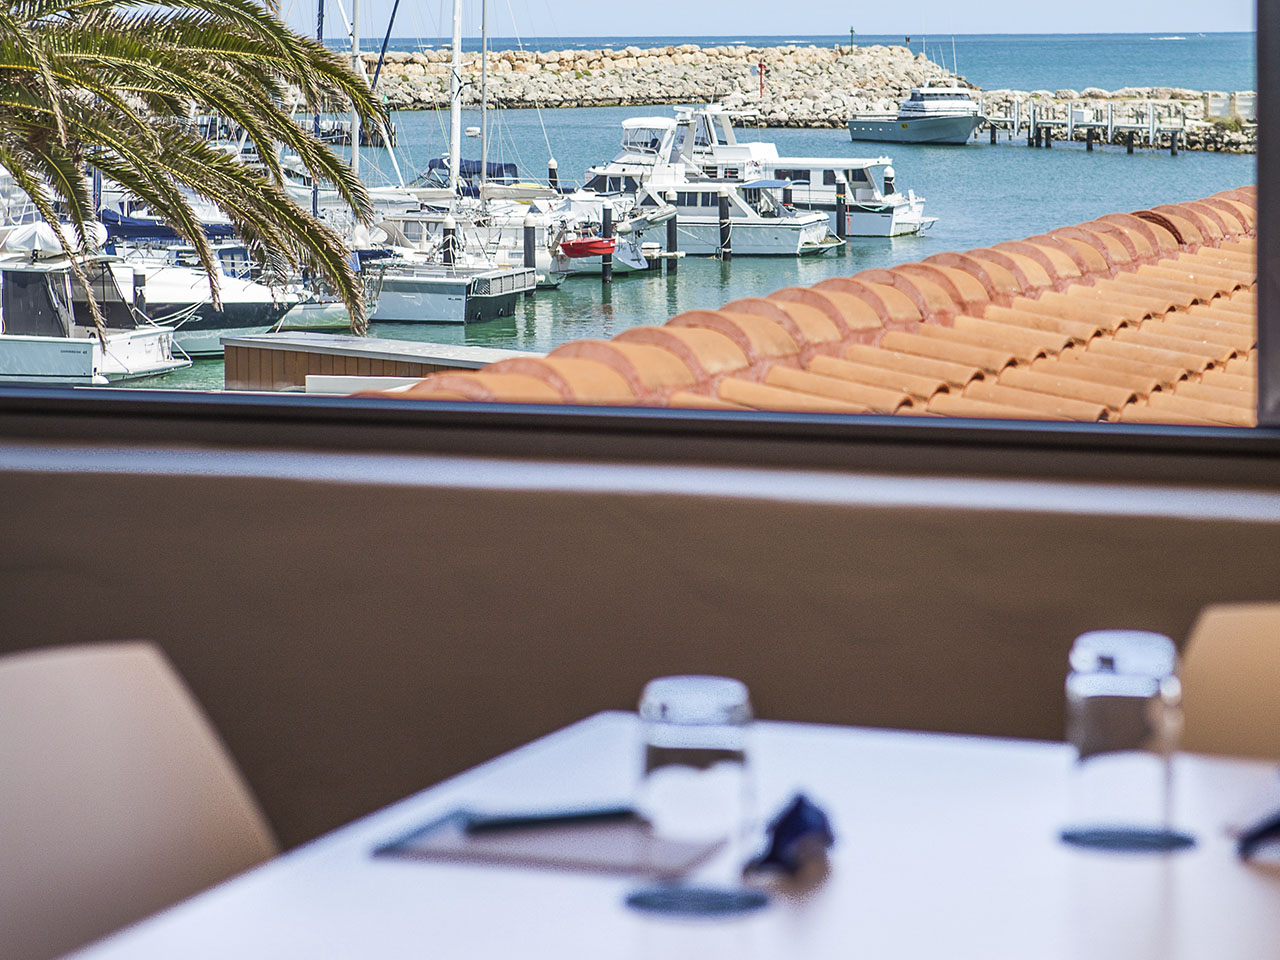 A Table With A View Of The Marina Behind It.